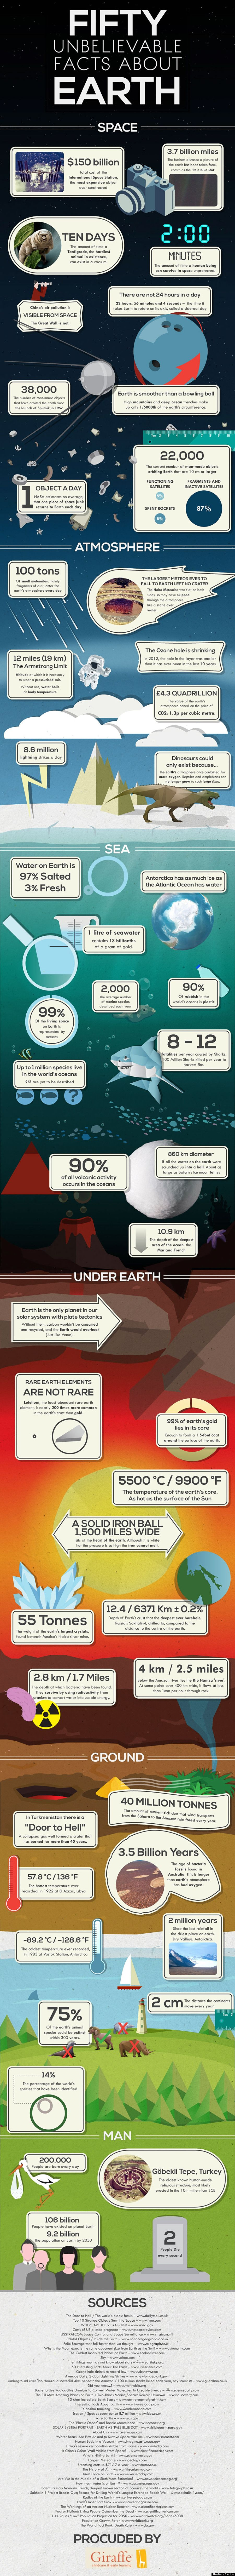 cool facts about living in space. look: 50 unbelievable facts about our planet cool living in space